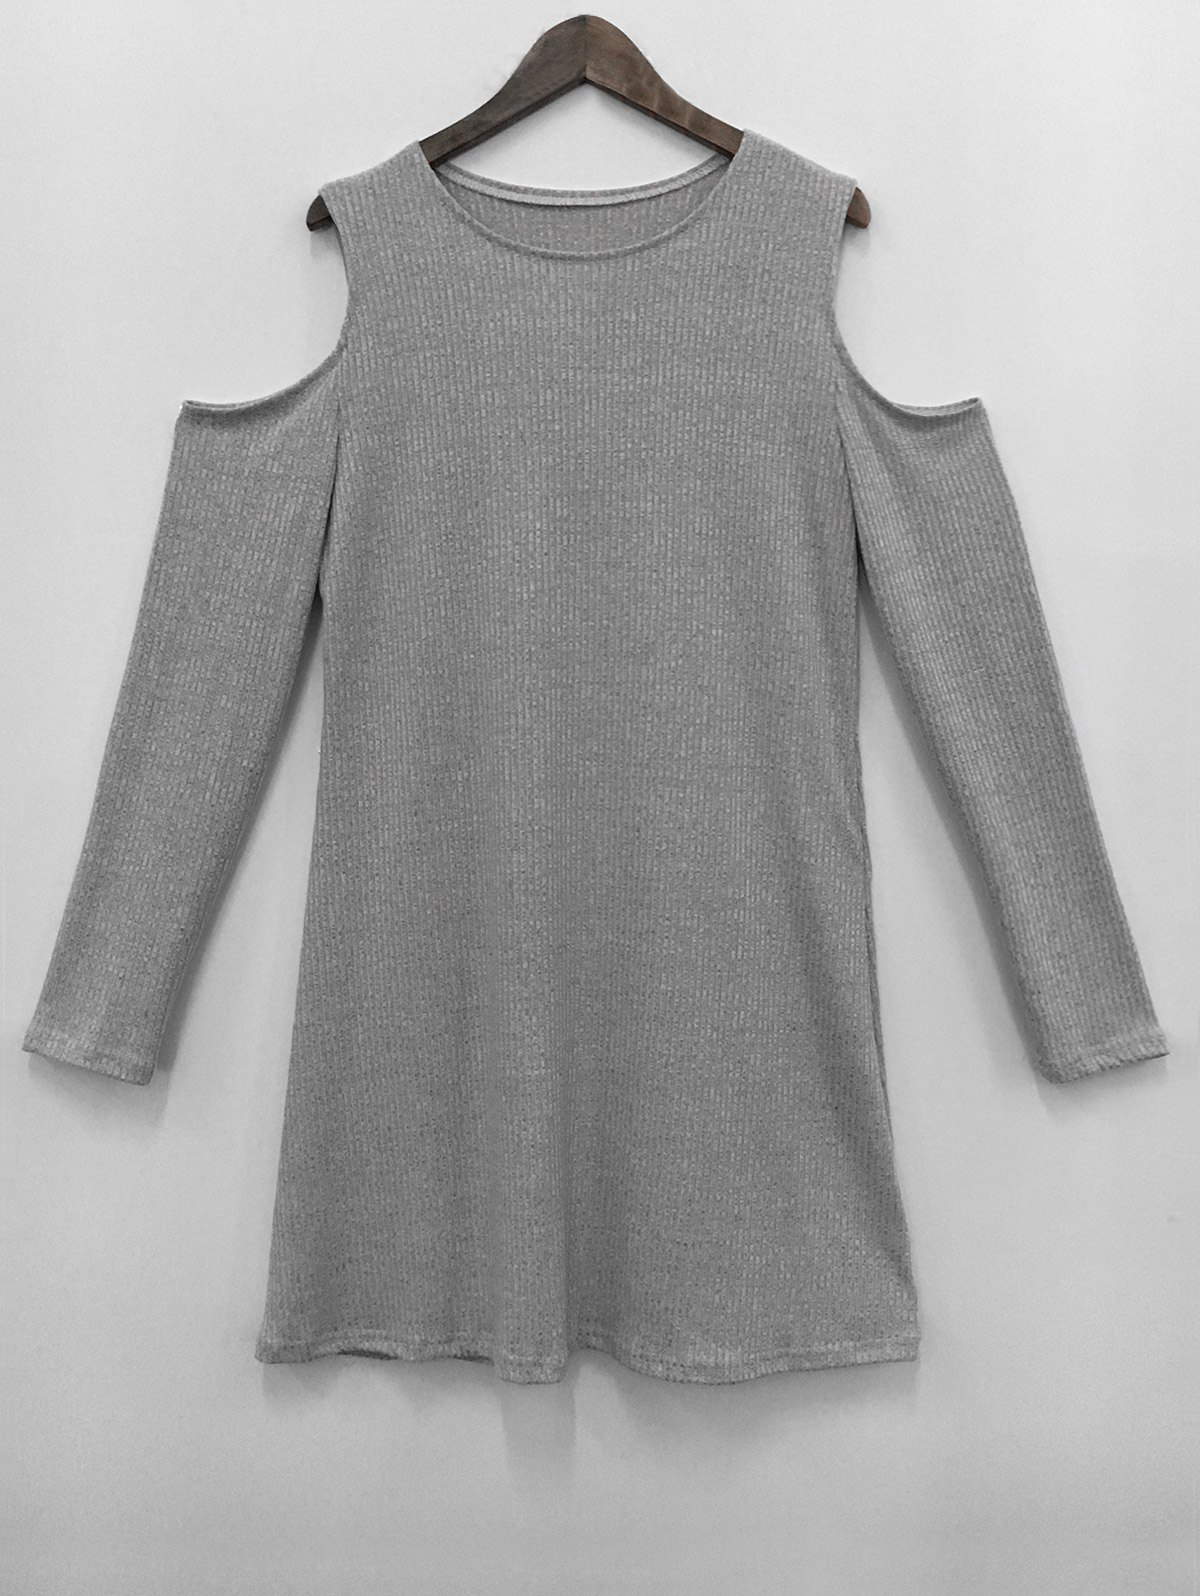 Cold Shoulder Knit Short Jumper Dress - GRAY S